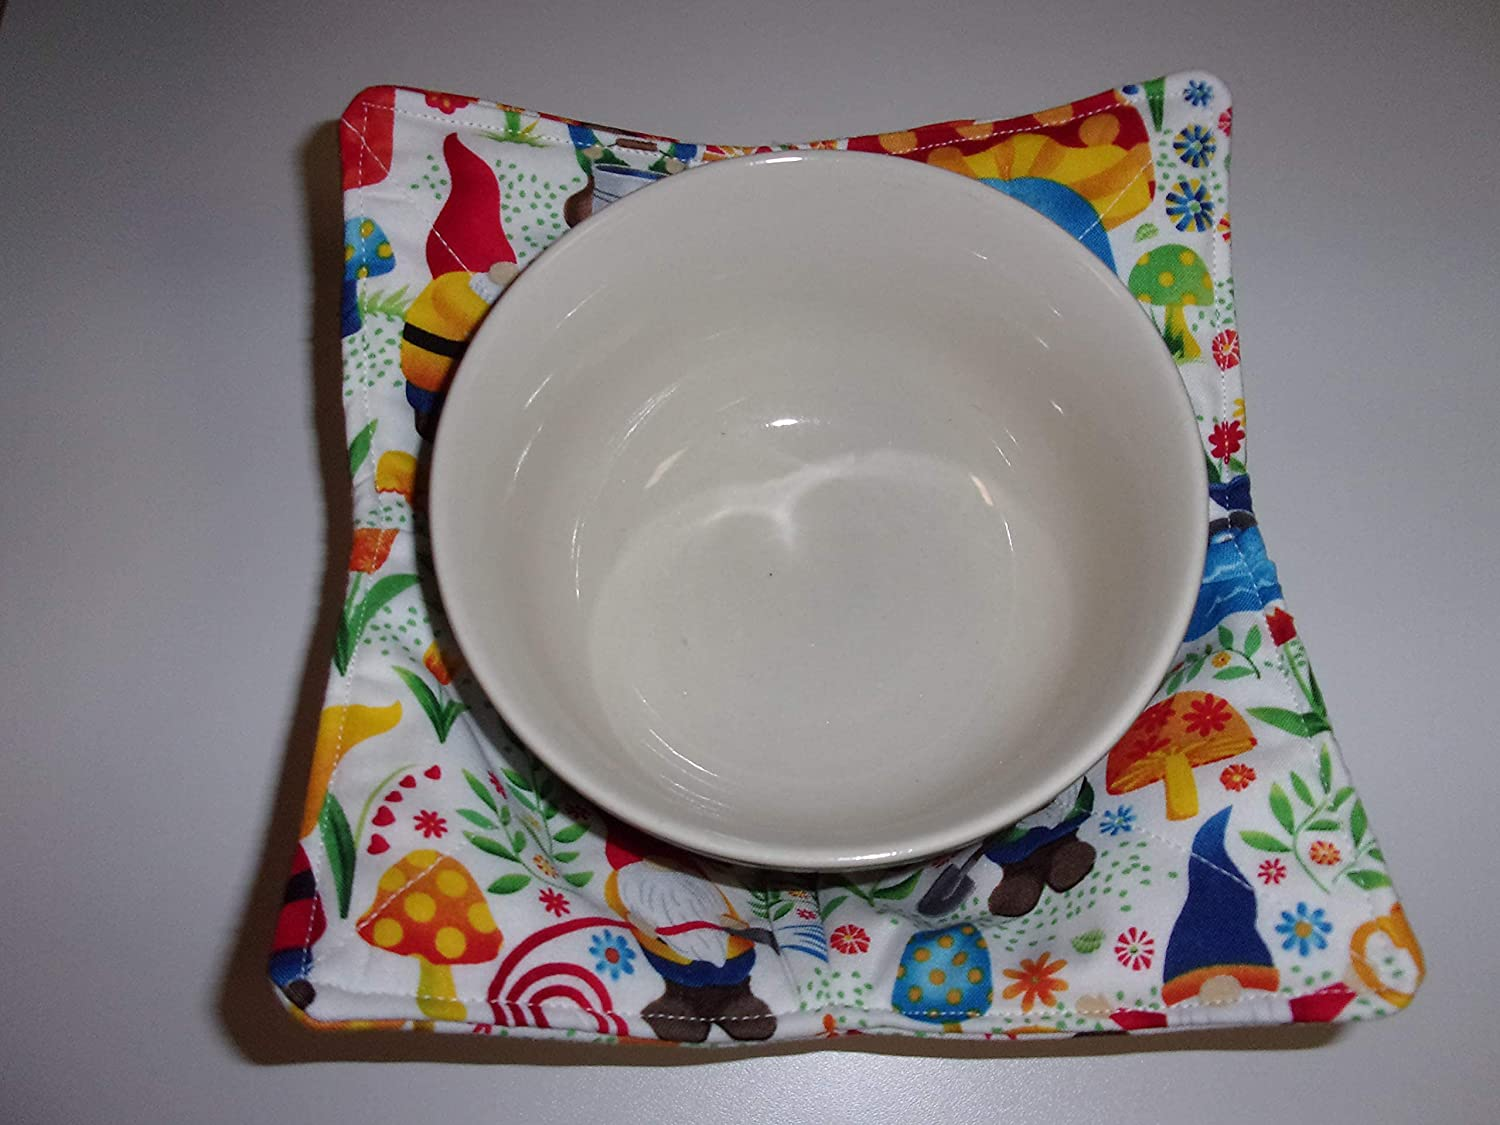 Microwave Bowl Cozy Cozies Gnome Be Gnomes Happy Worry New product Sale special price Woodland